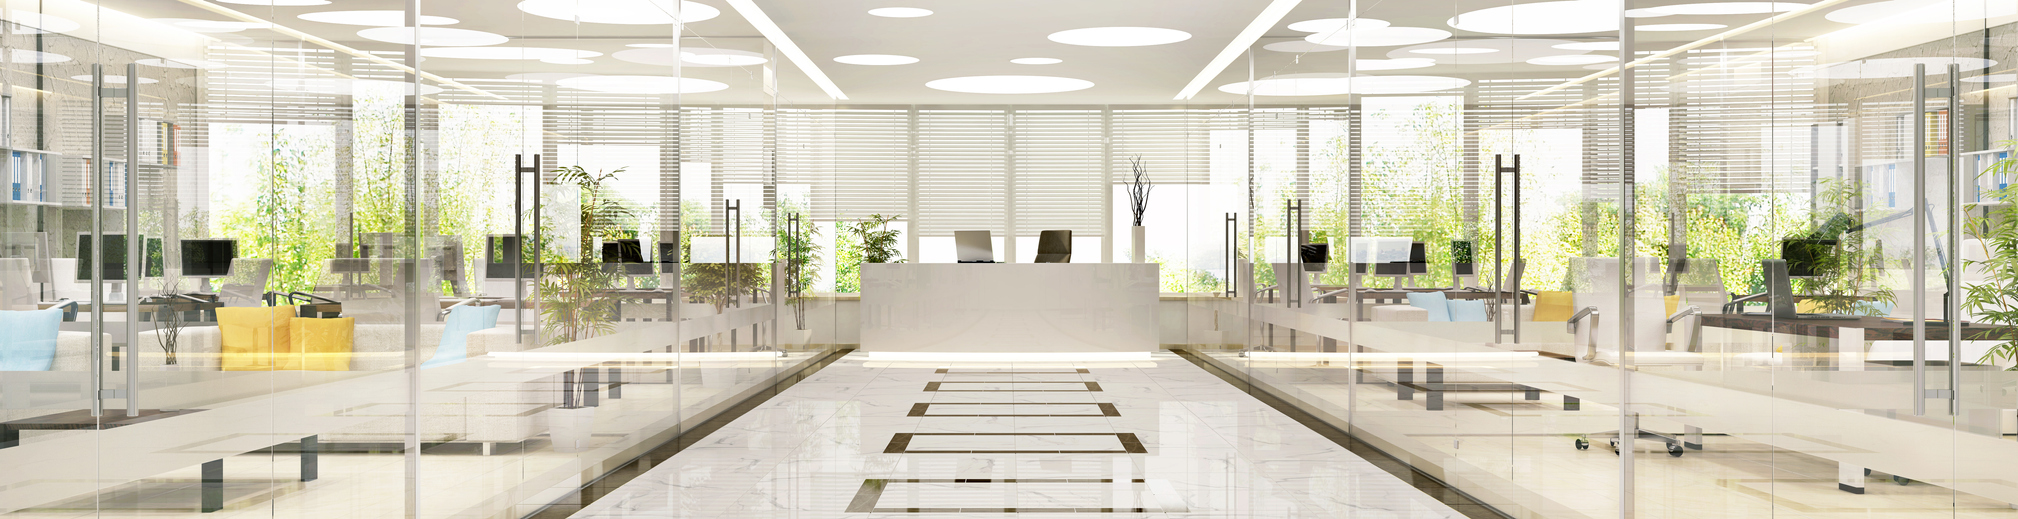 Interior design of large spacious office with glass partitions